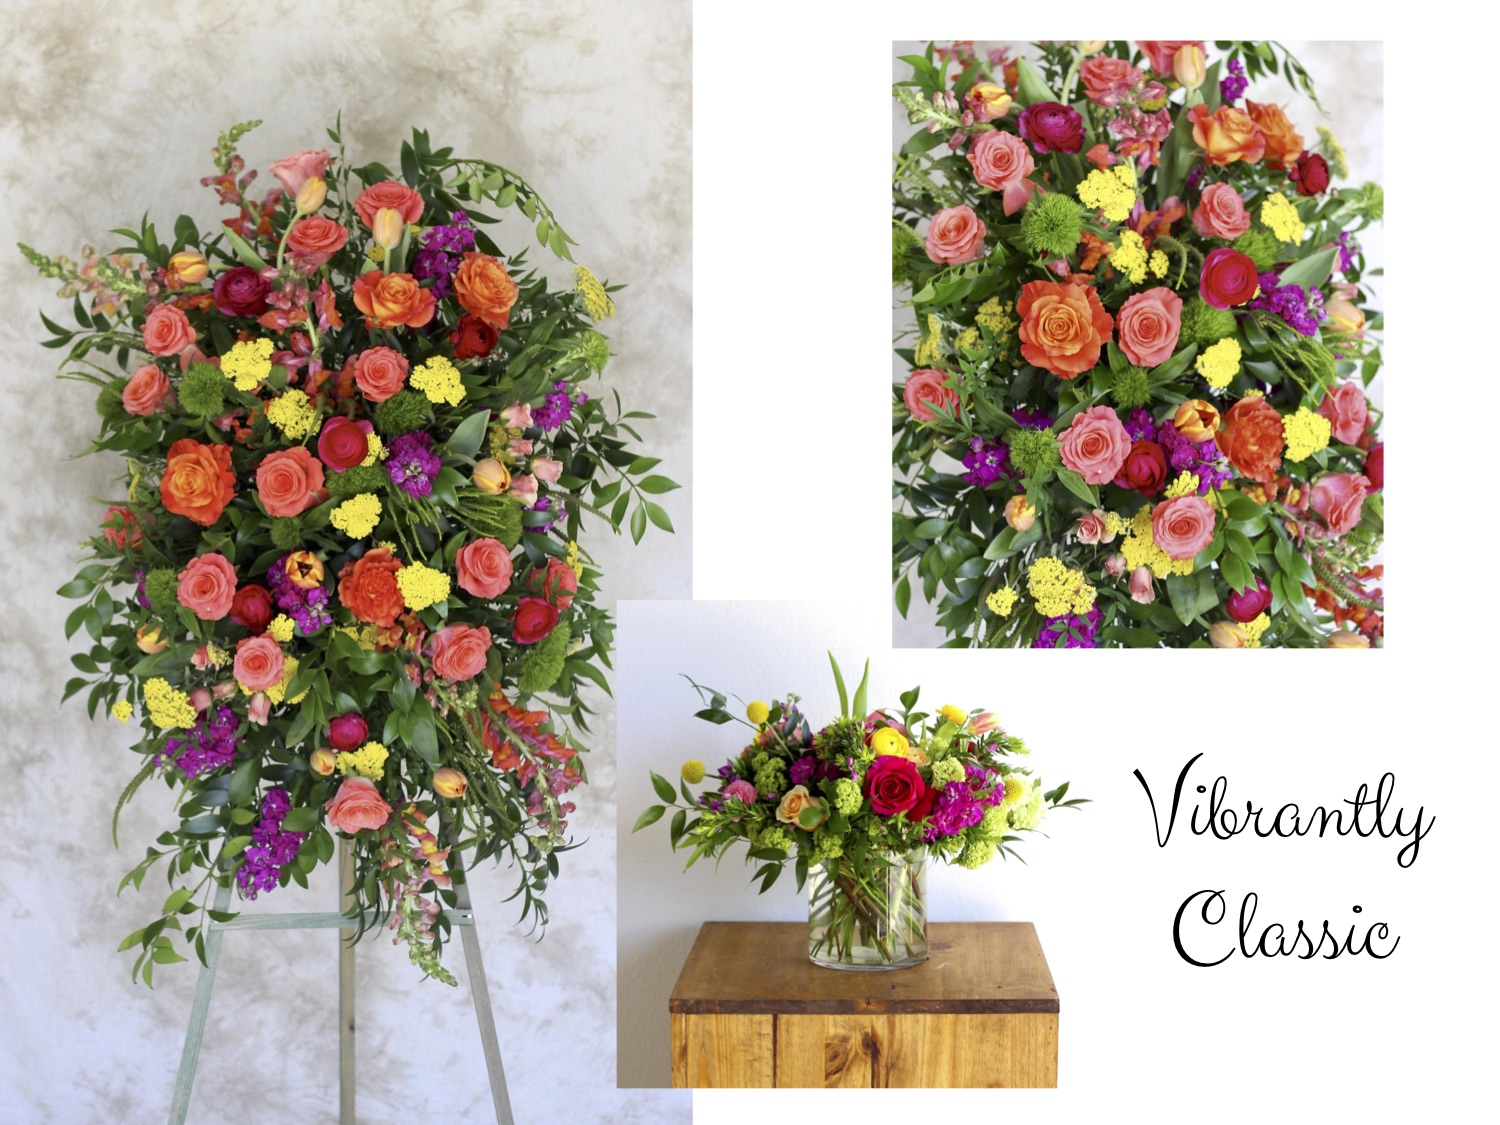 Vibrantly Classic Memorial Funeral Designs - The Bloom Of Time.jpg